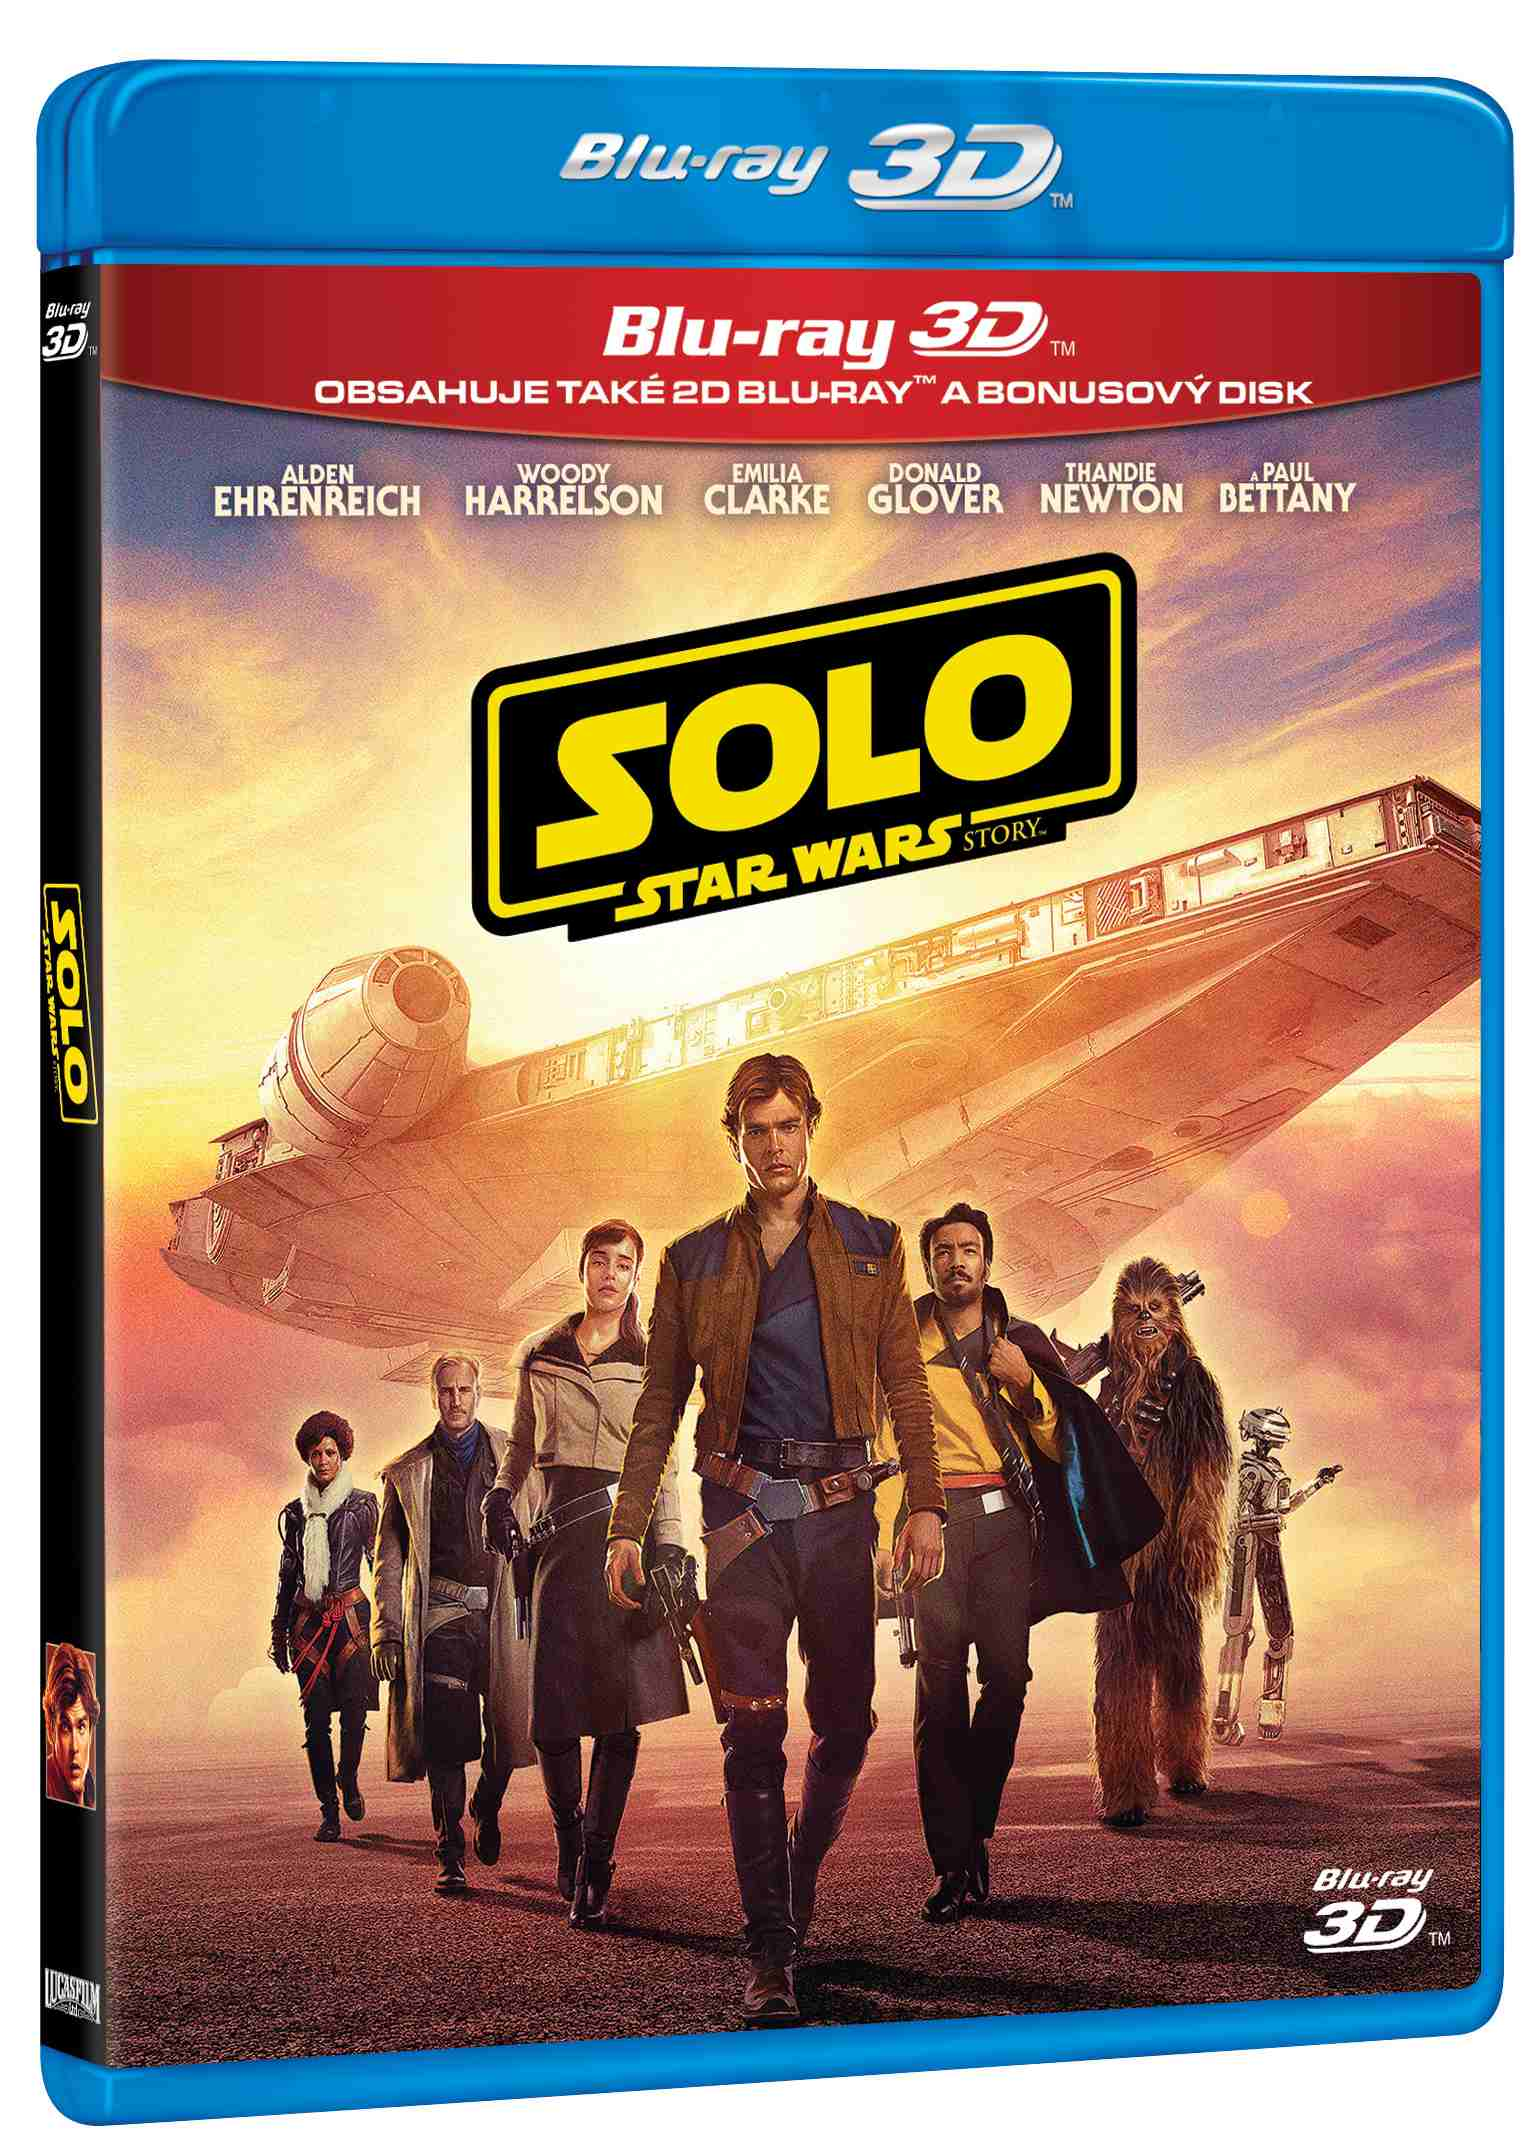 Solo: Star Wars Story - Blu-ray 3D + 2D + Bonus Disc